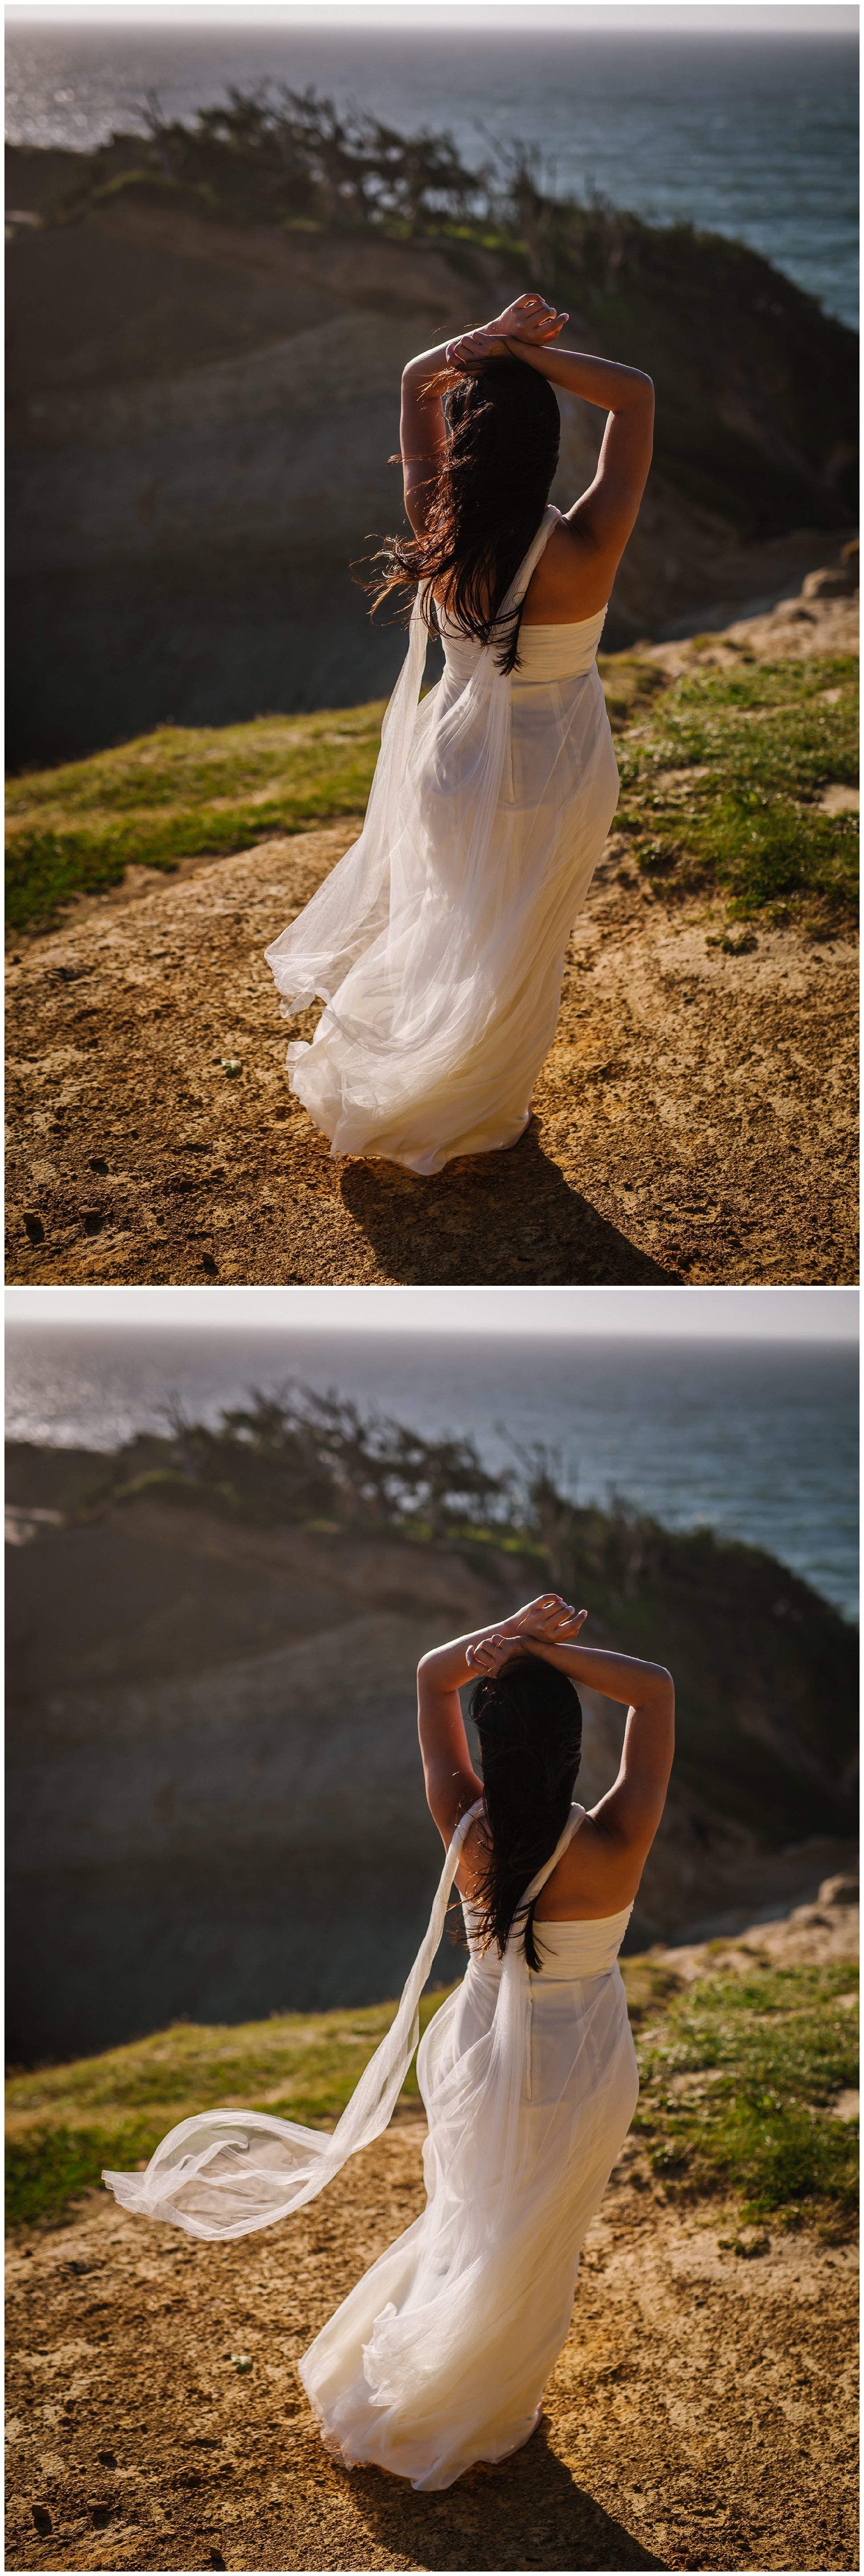 Cape-kiwanda-bridal-portrait-destination-wedding-photographer_0020.jpg